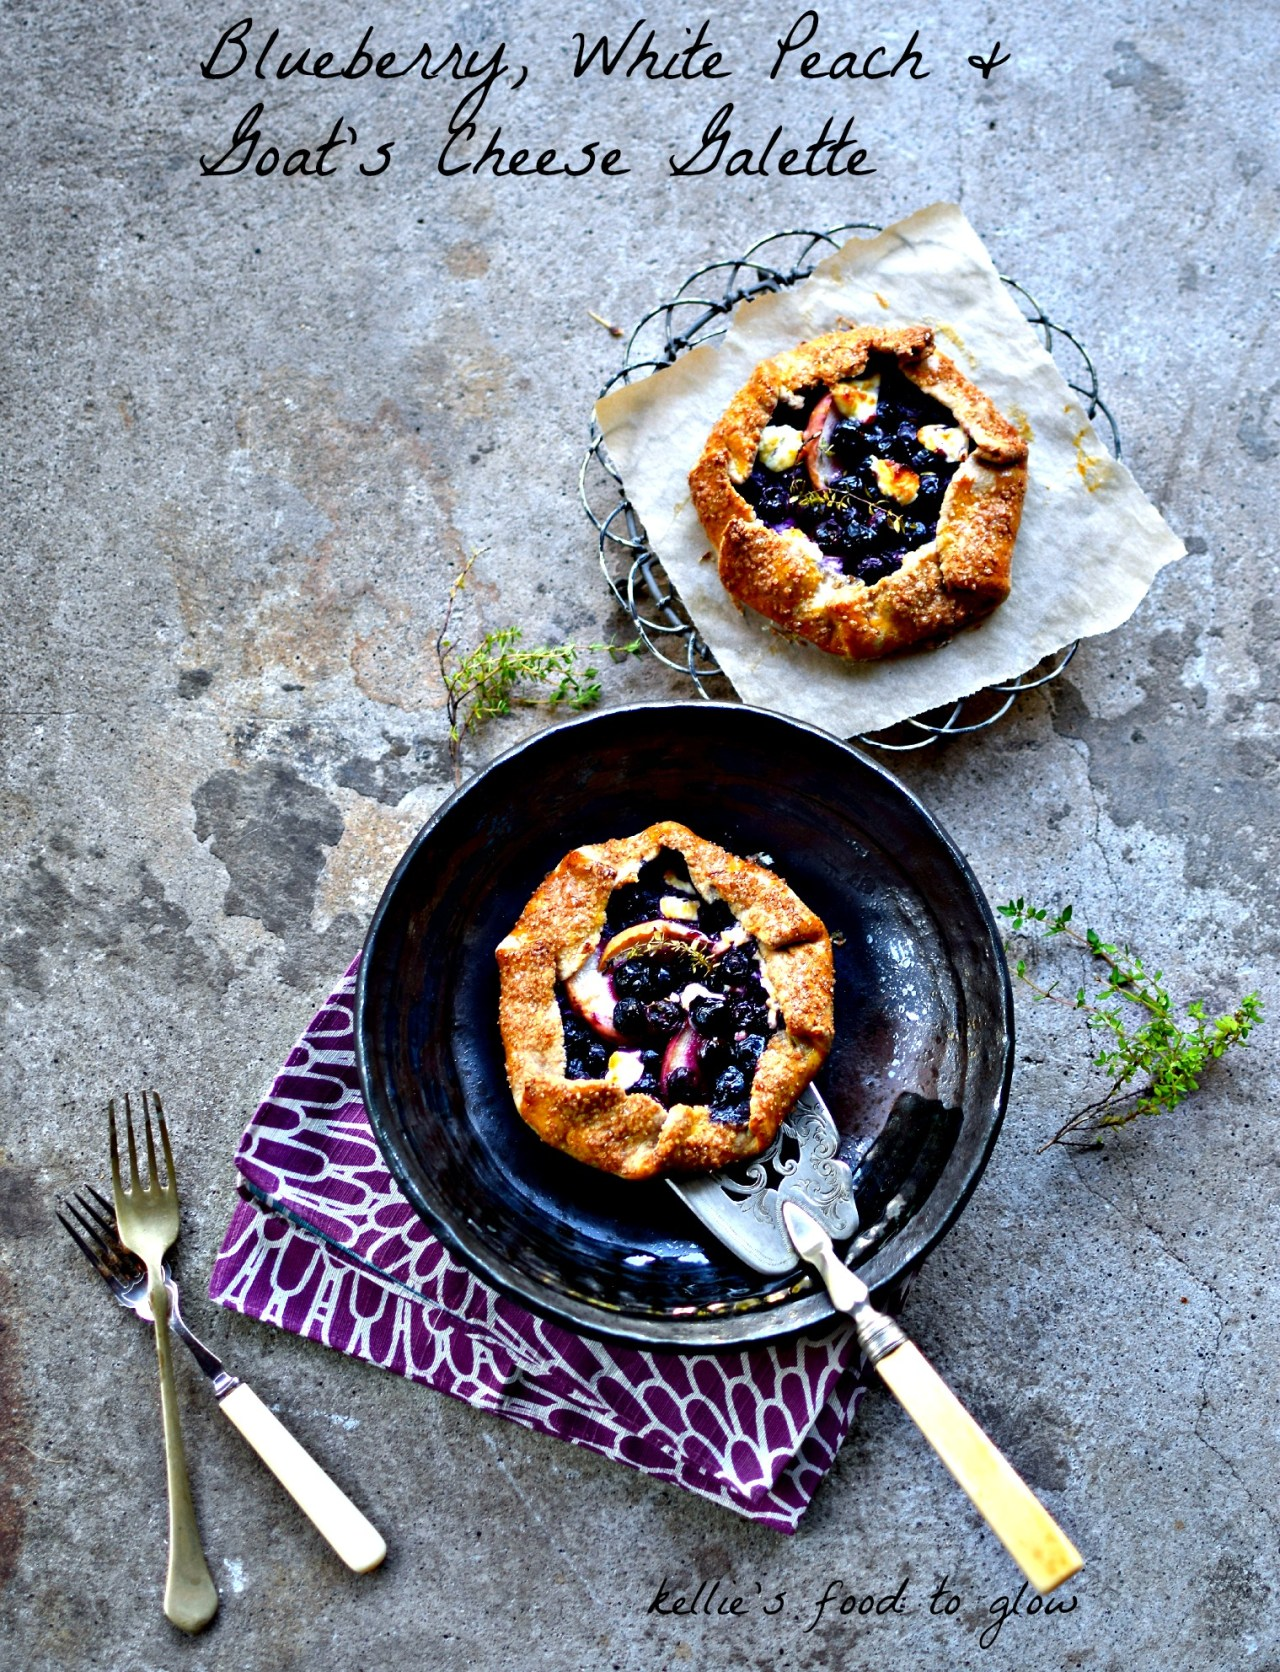 Blueberry Wholegrain Galette